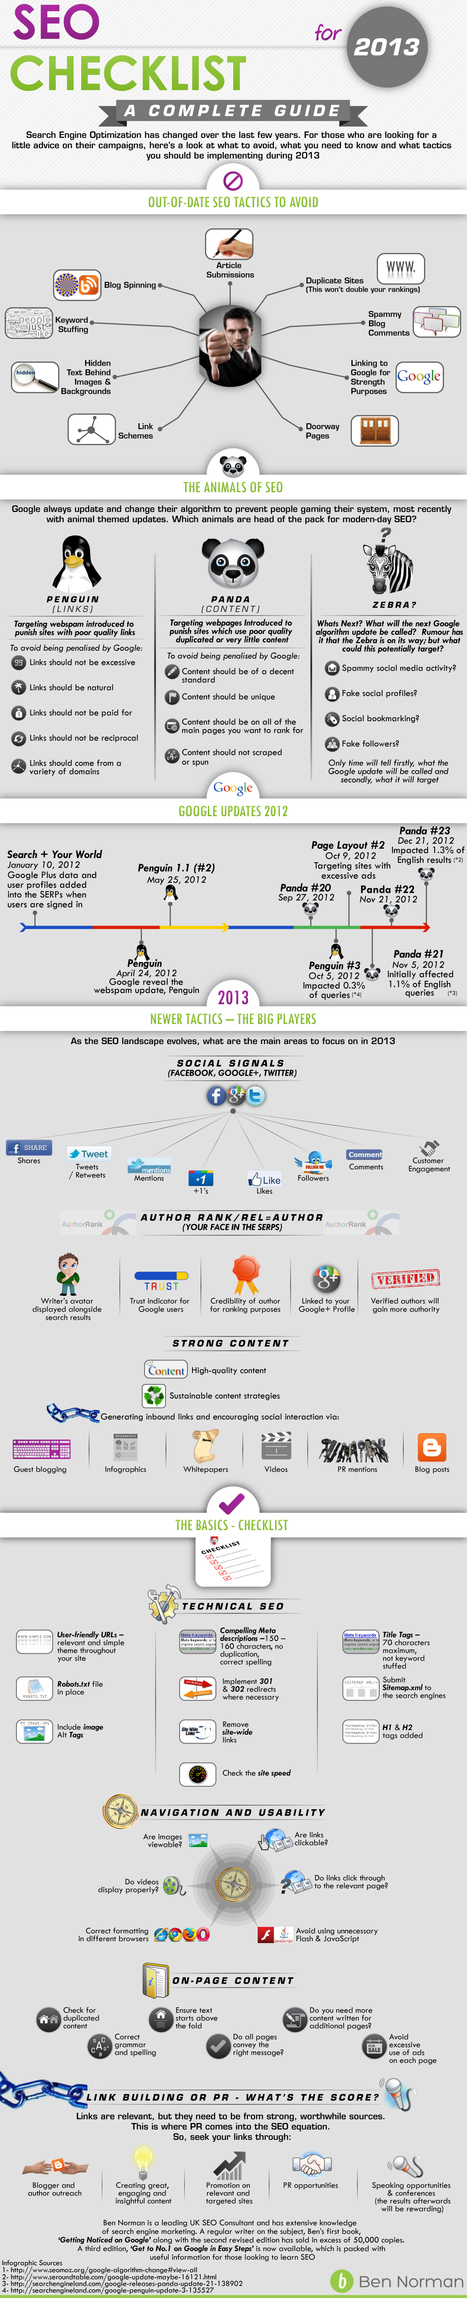 [Infographic] SEO Checklist for 2013 | Digital & Mobile Marketing Toolkit | Scoop.it